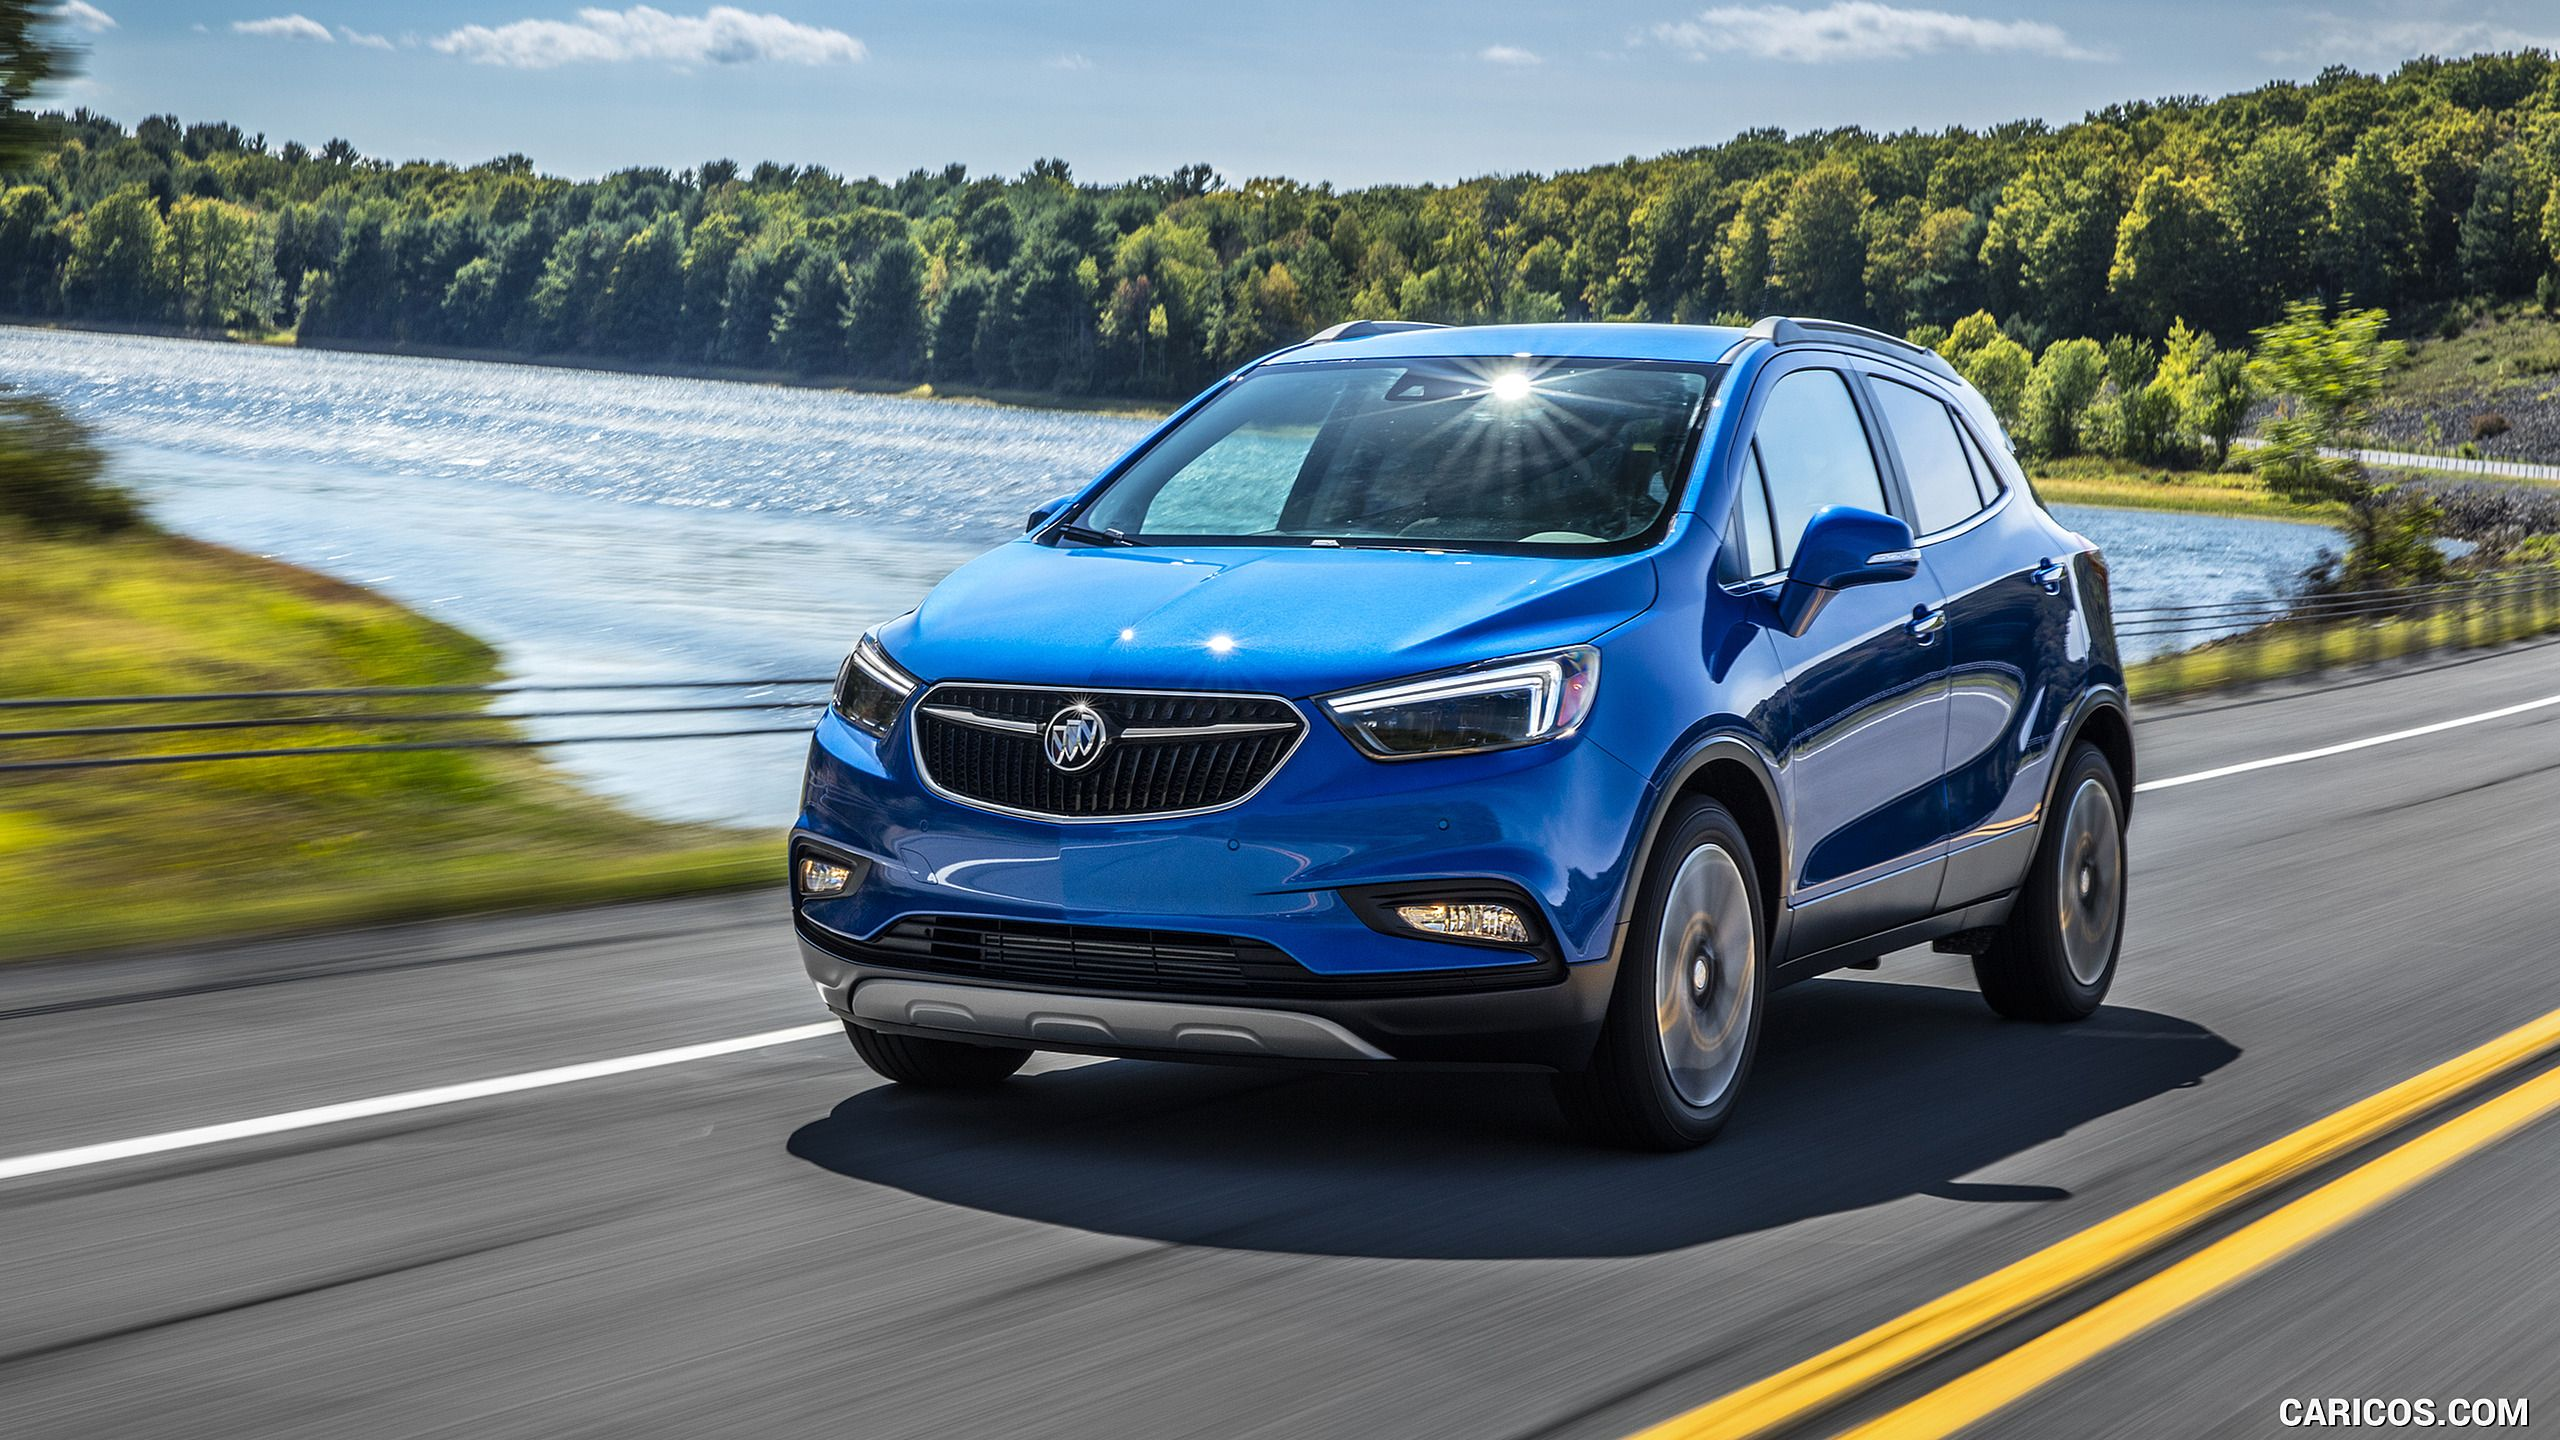 2017 Buick Enclave Sport Touring Edition Wallpaper Buick Encore Buick Buick Enclave